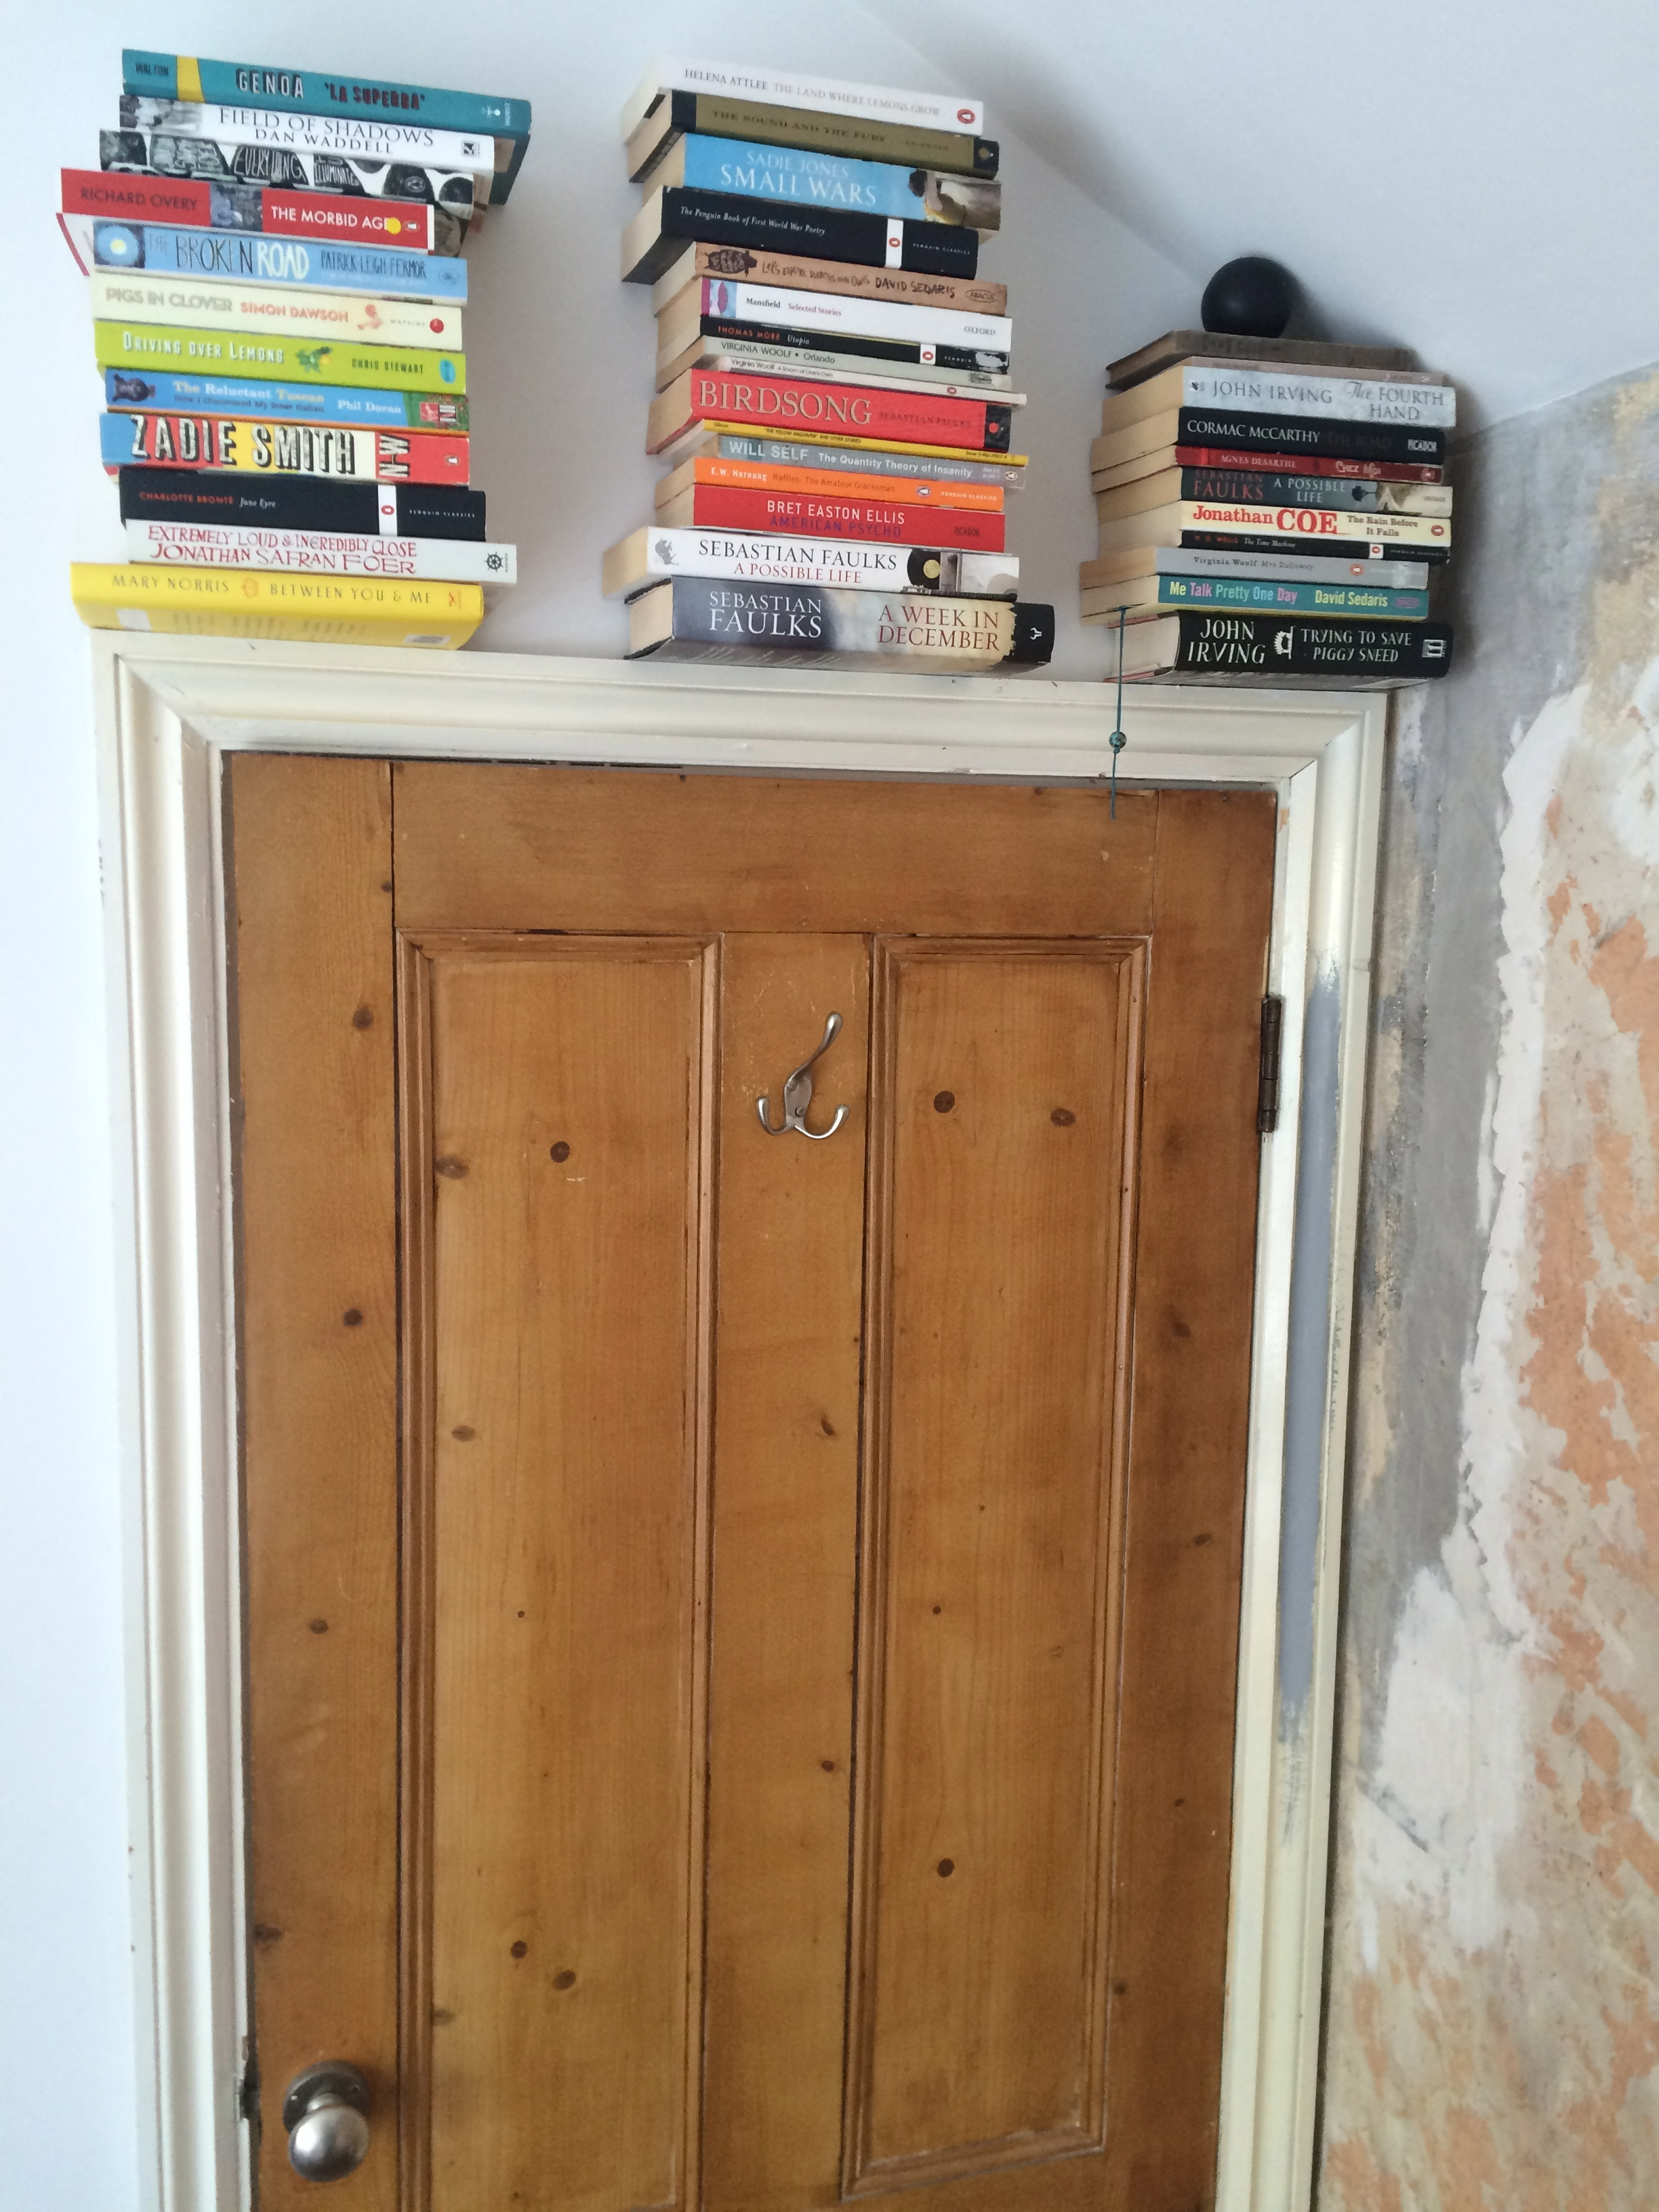 invisible bookshelf over door